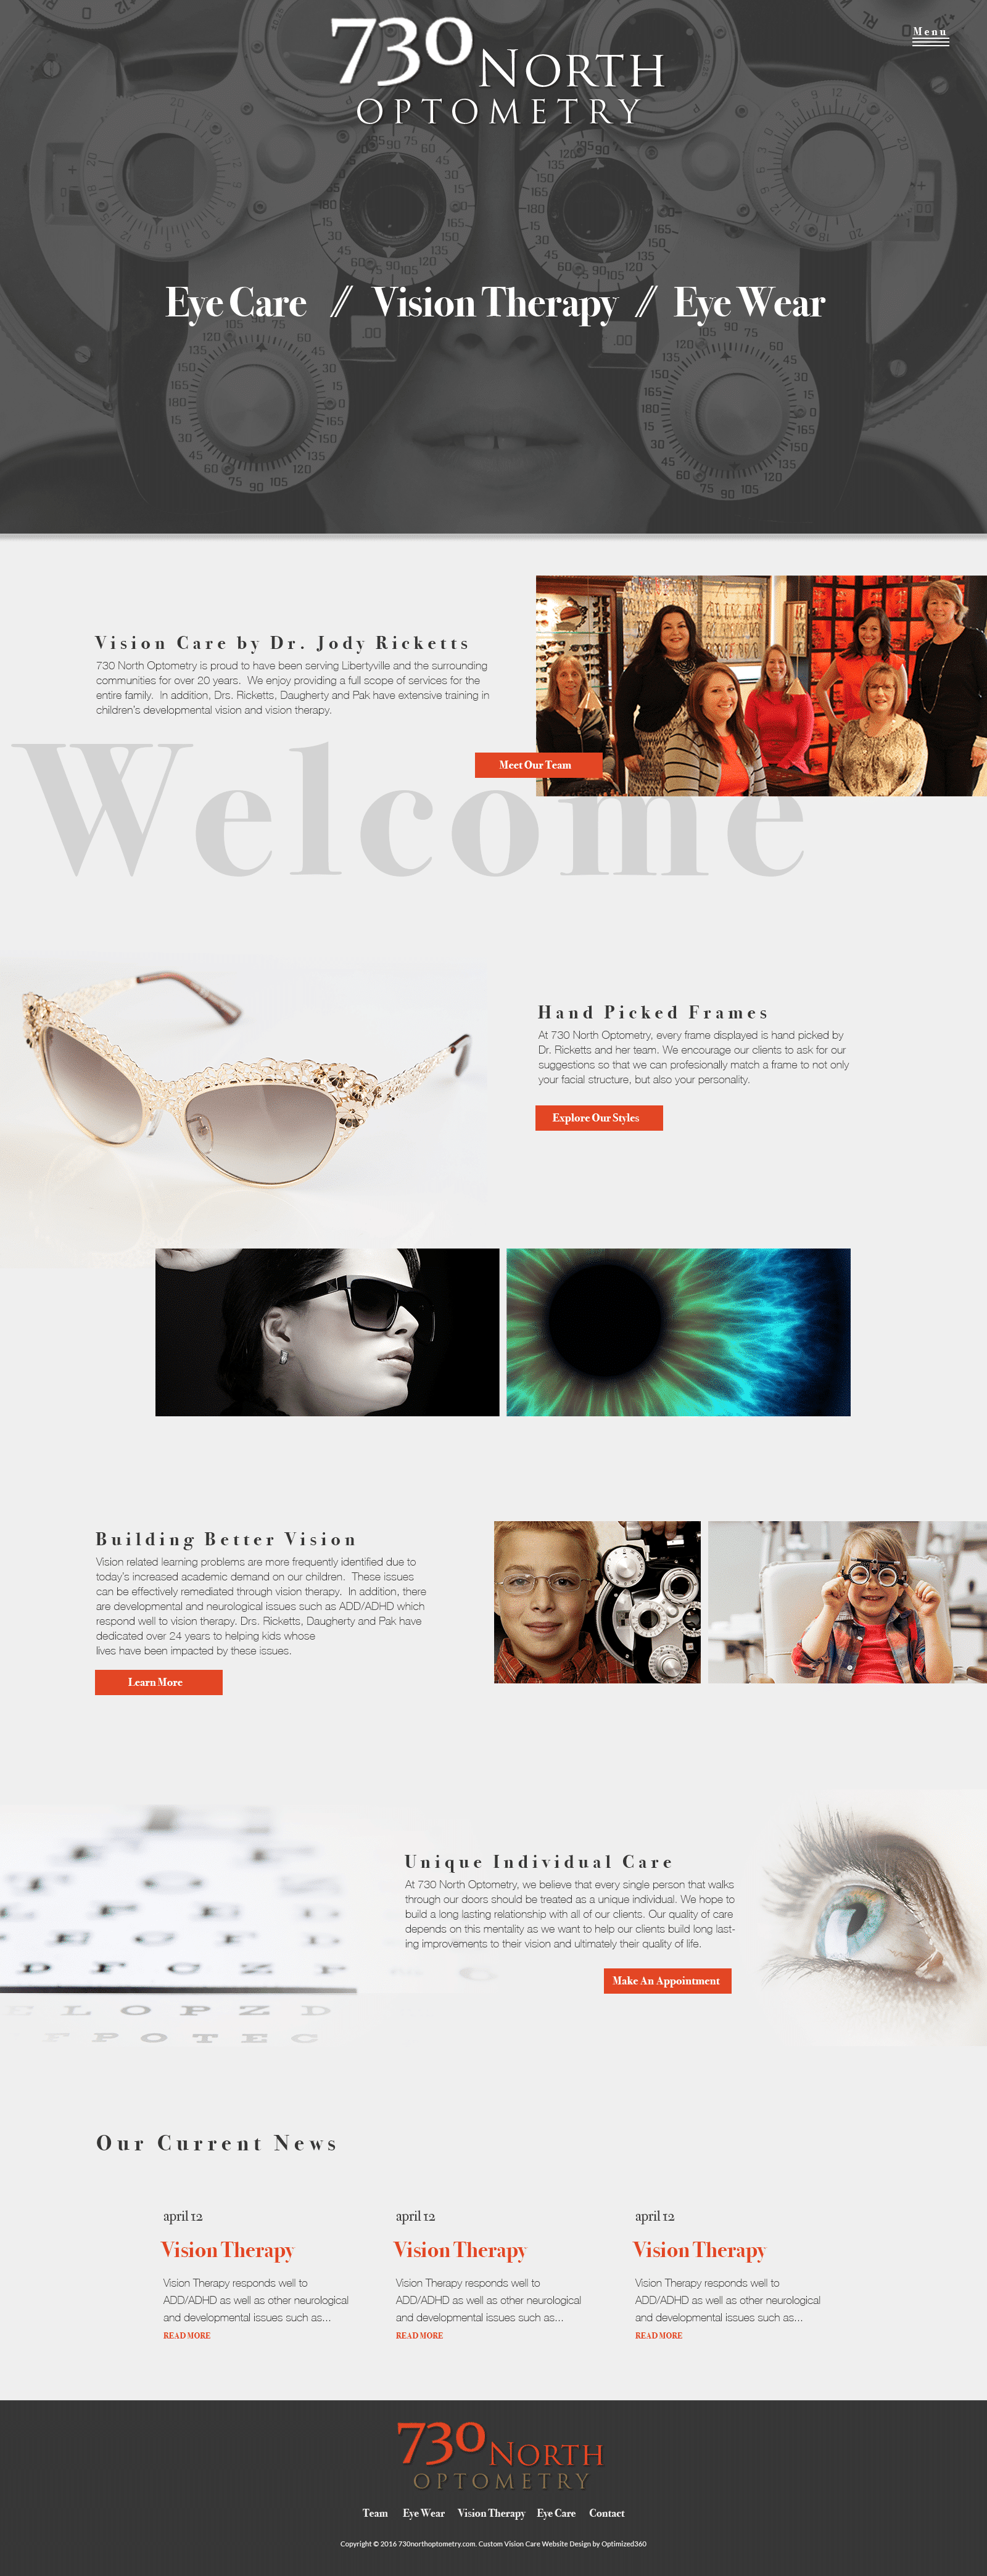 730 North Optometry Website Full Page